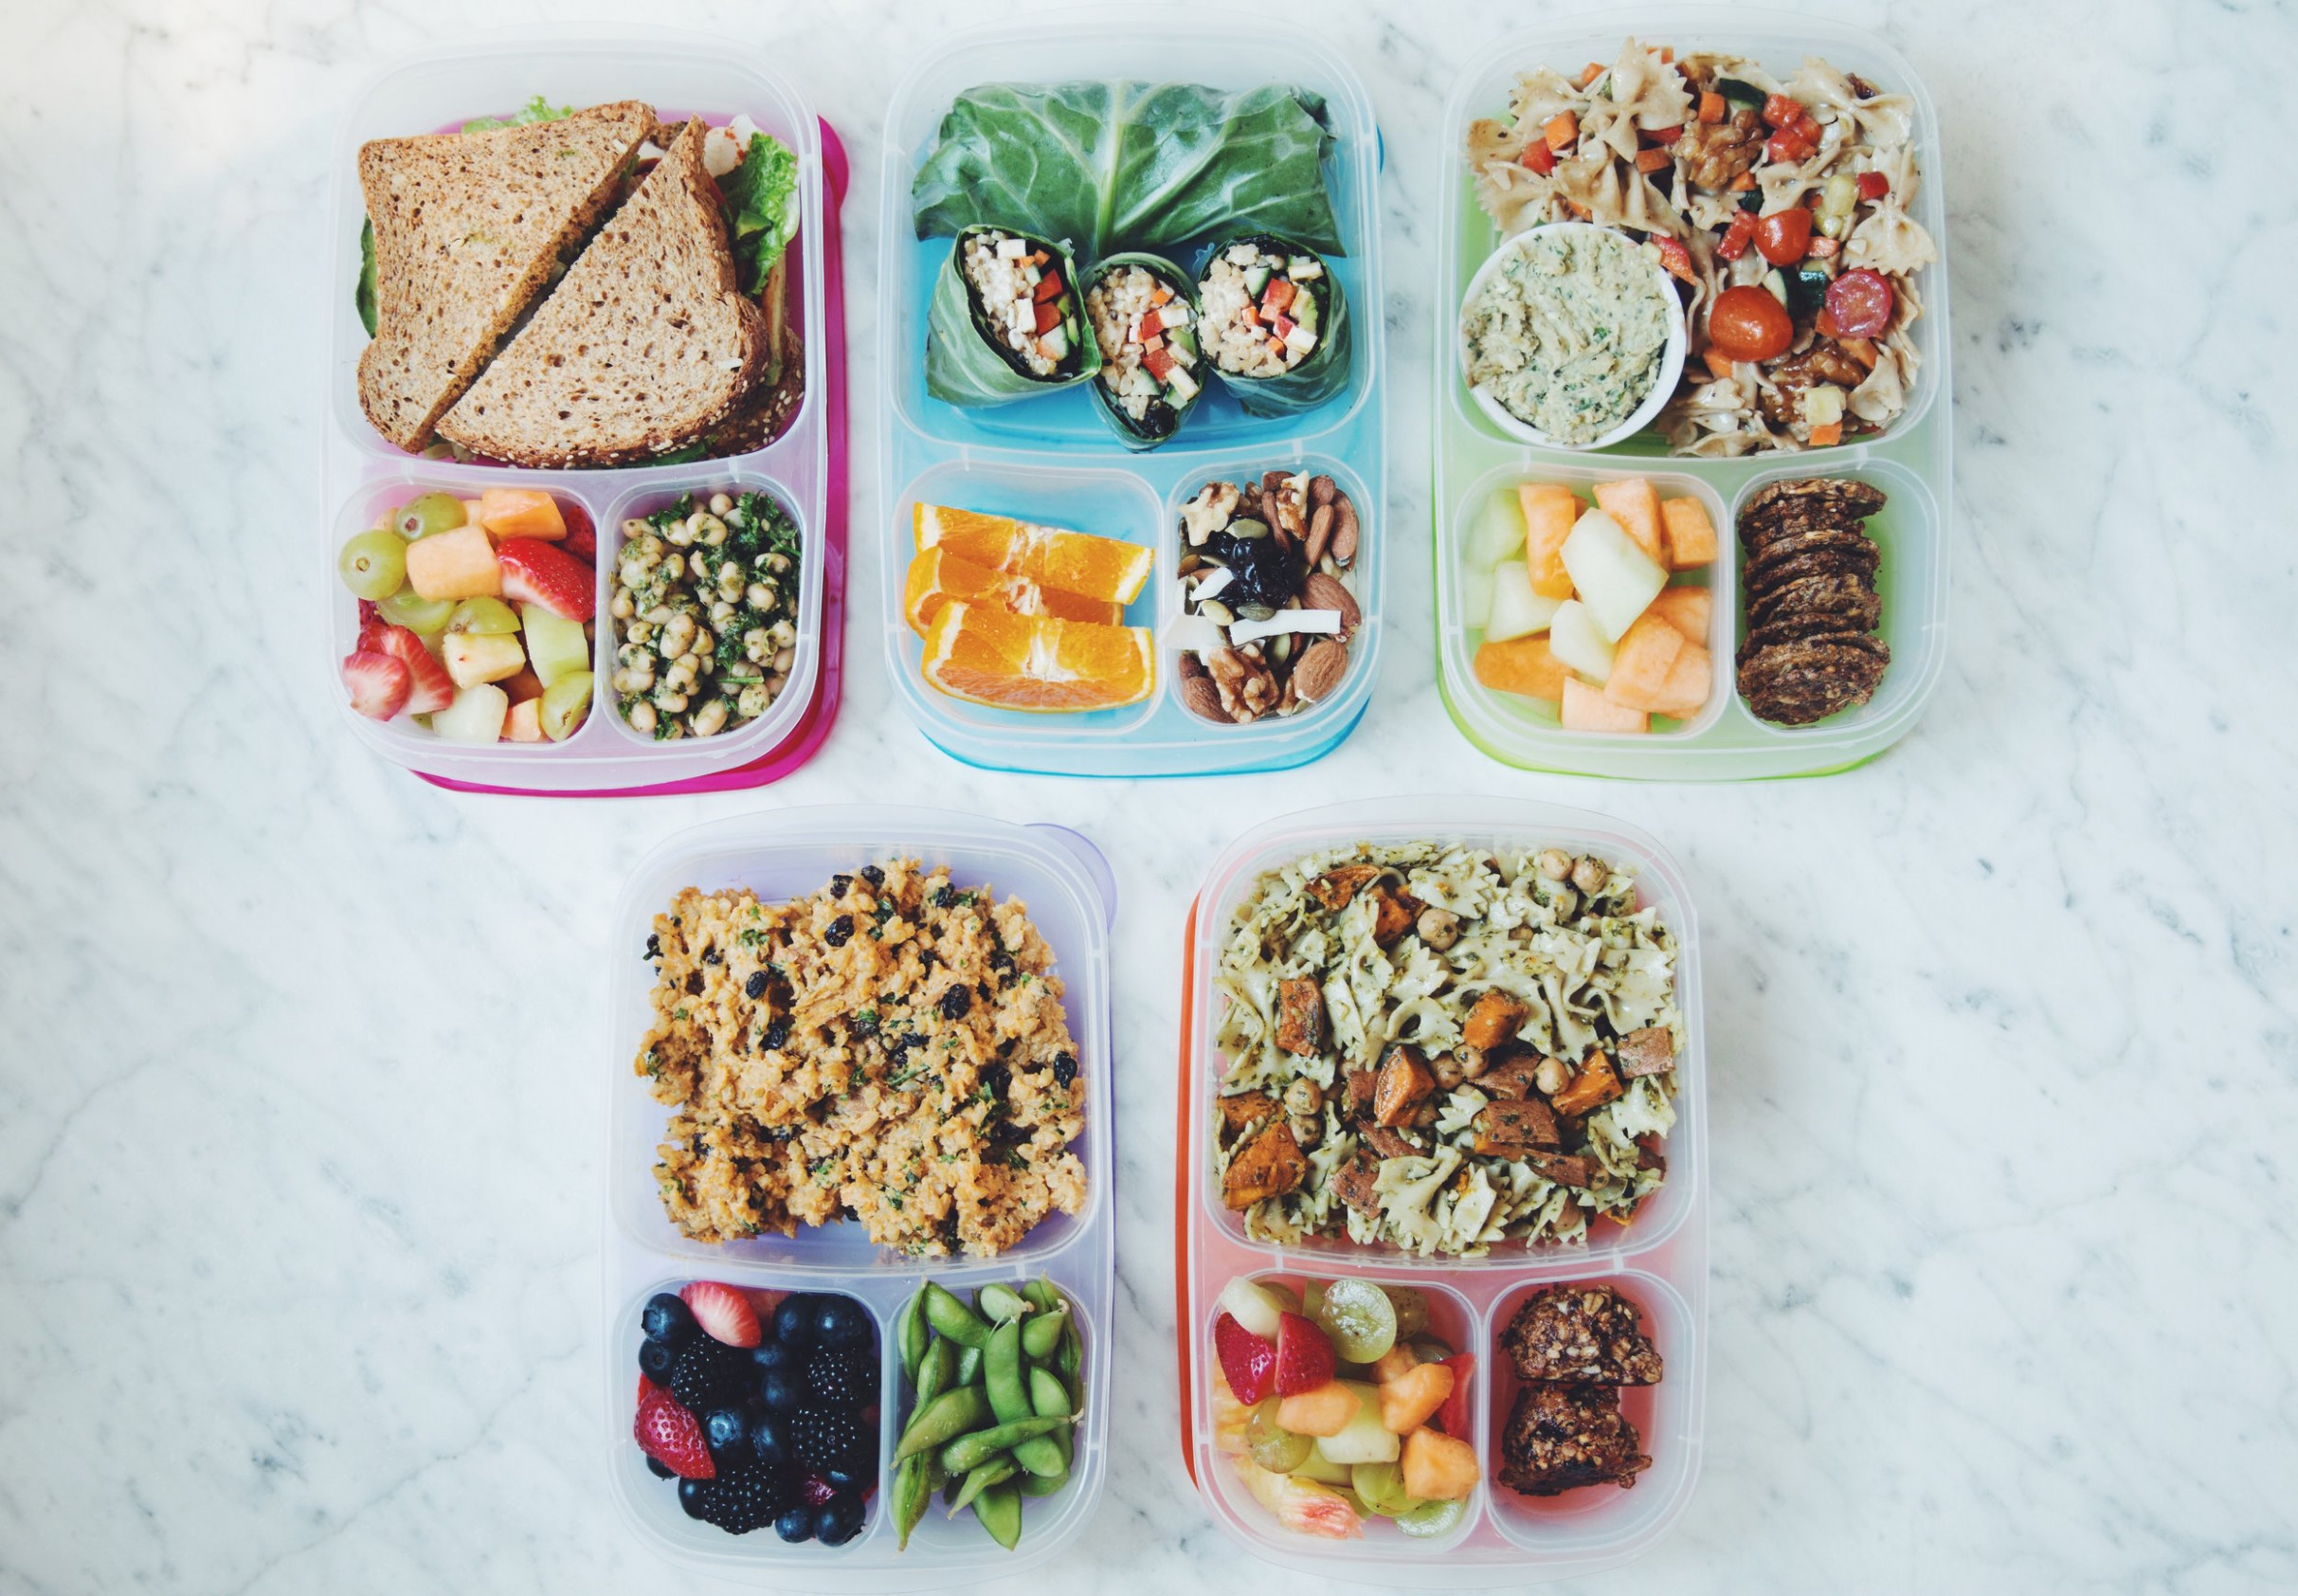 13 easy vegan back to school bento boxes | hot for food - vegetarian japanese bento box recipes